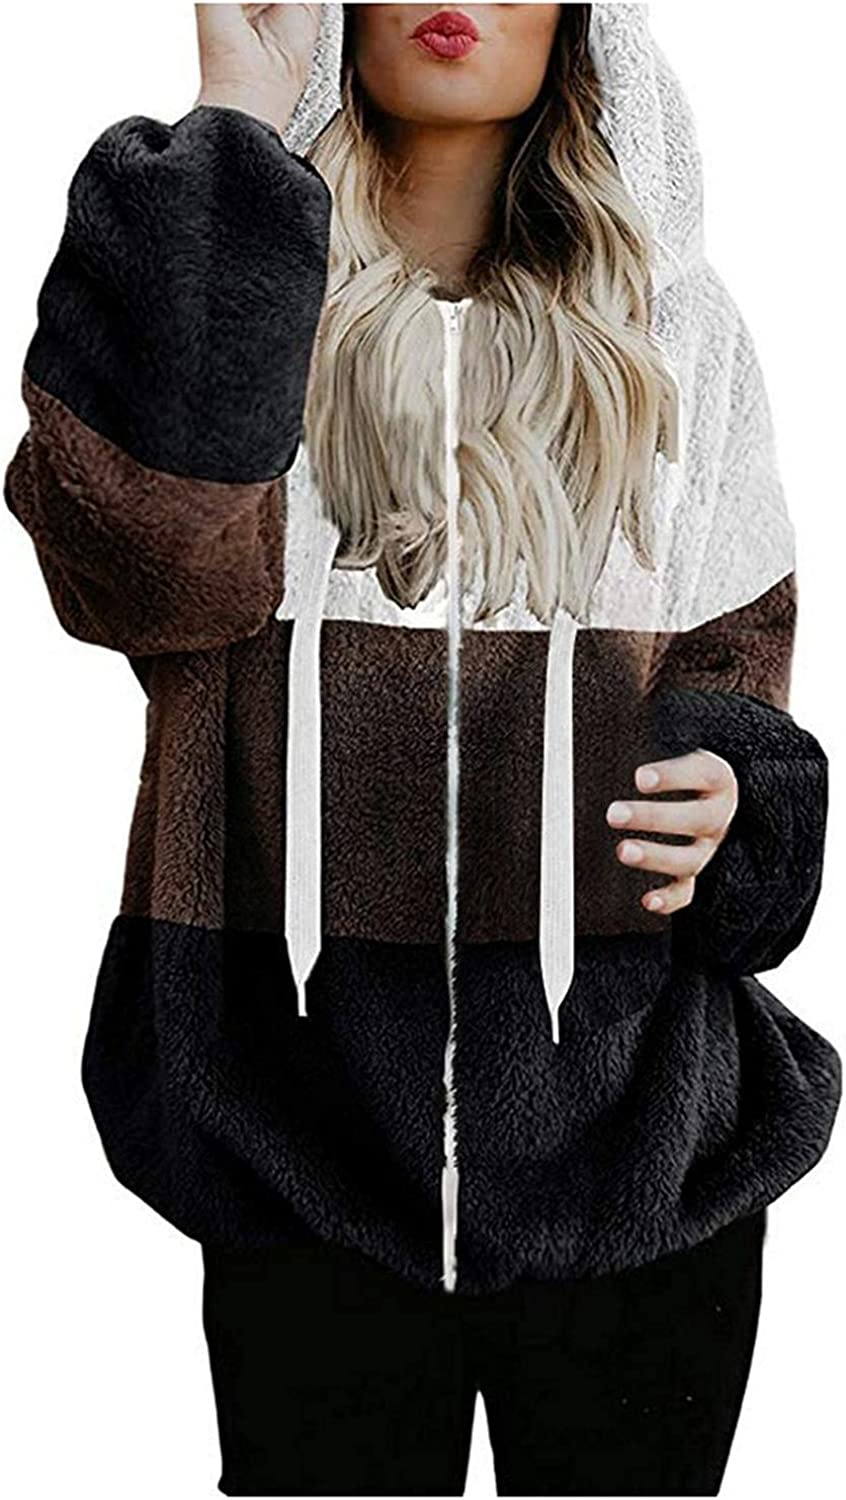 AODONG Womens Hoodiess Oversized Color Block Double Fuzzy Warm Casual Pullover Hooded Sweatshirt Outwear with Pockets